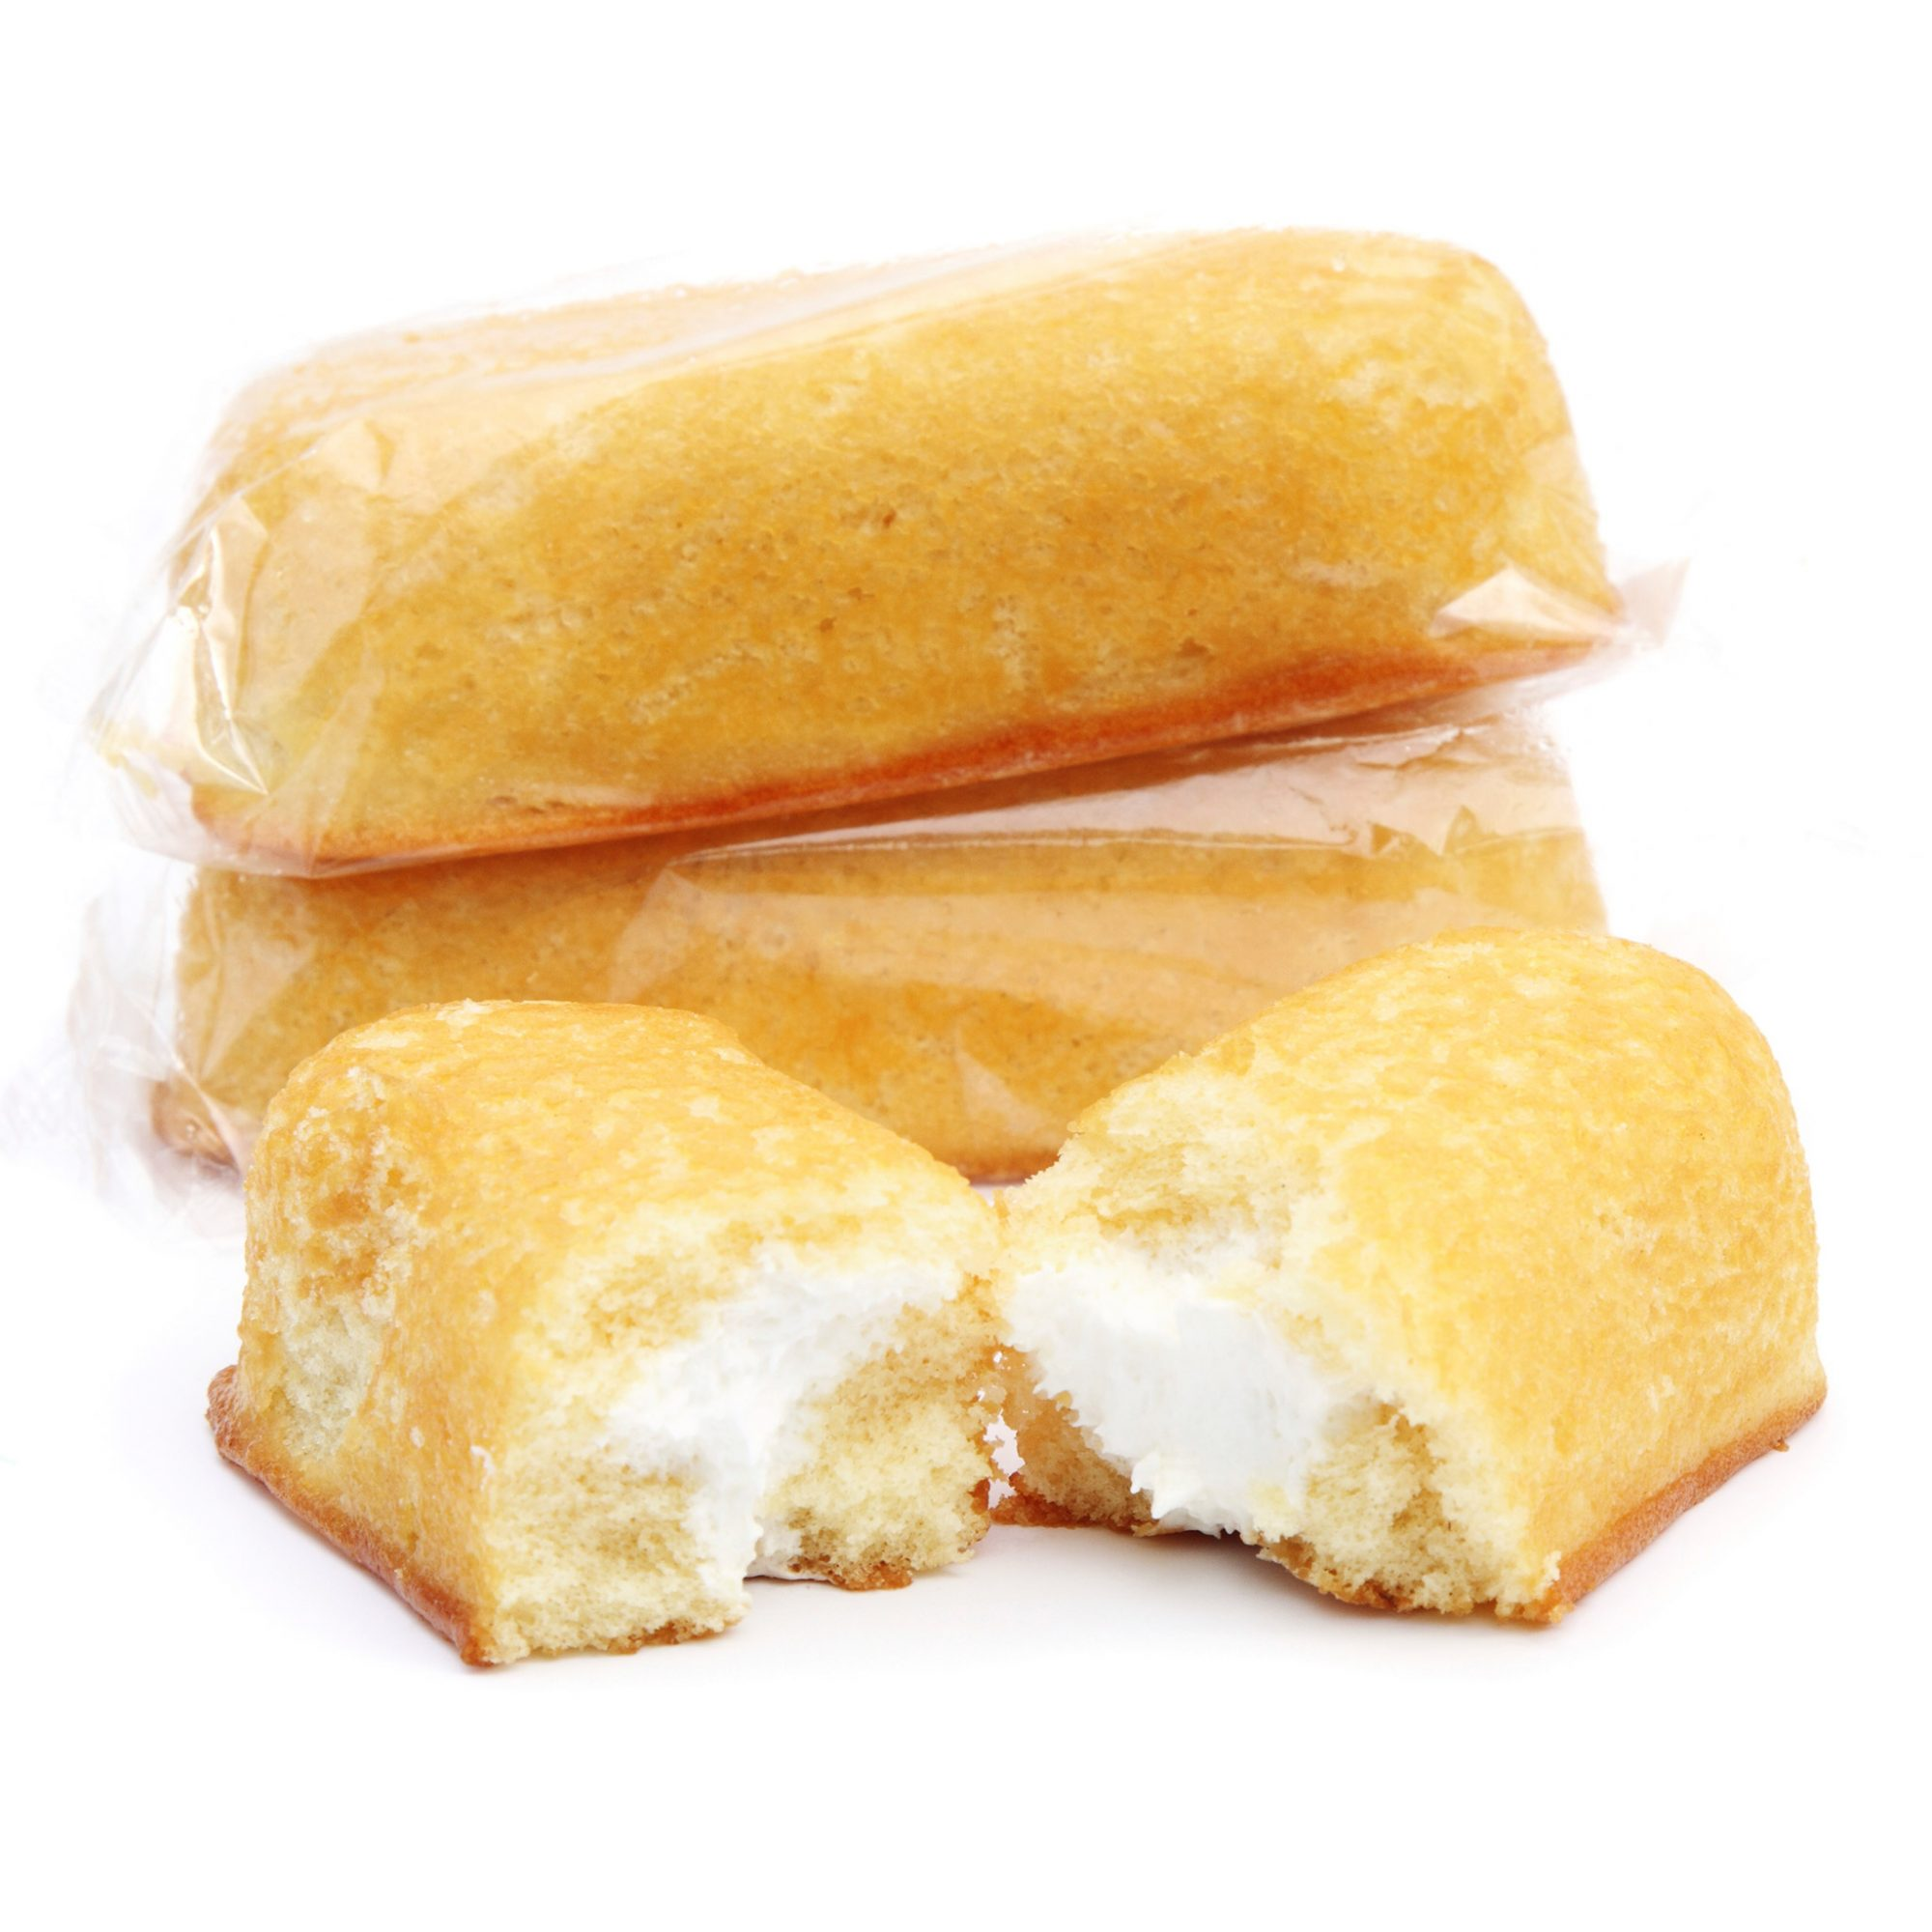 A Startup Dedicated to Making a Healthier Twinkie